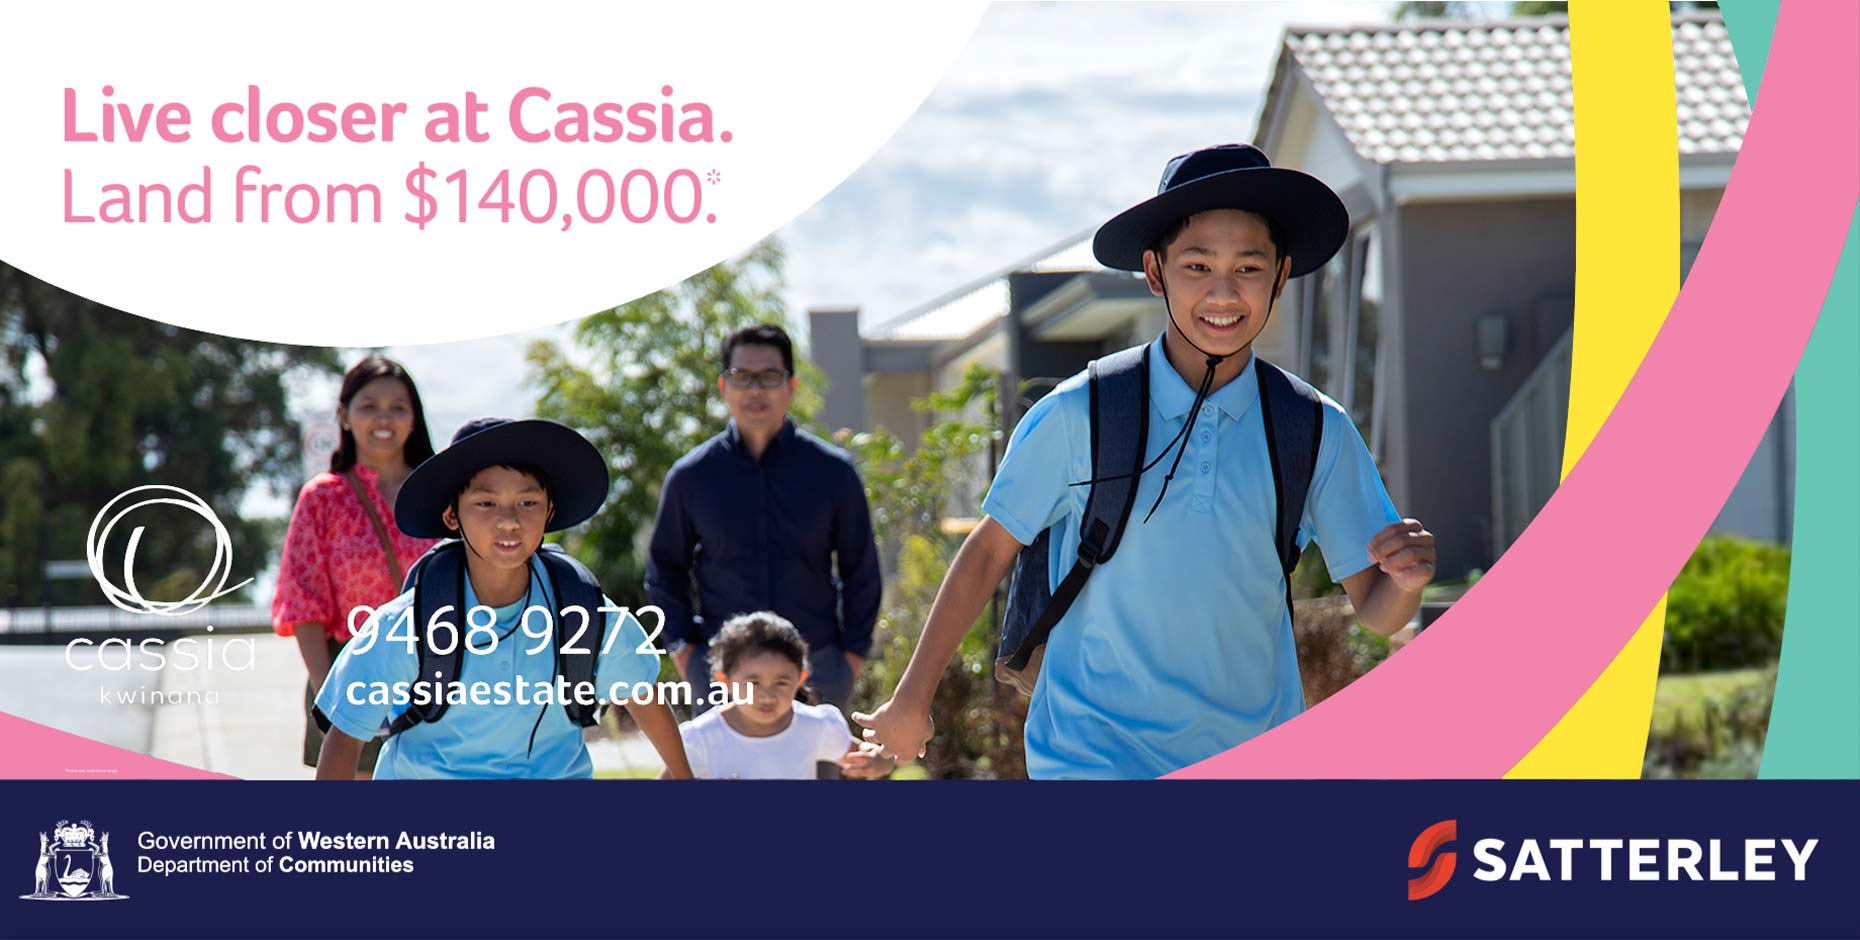 Cassia Rise Housing estate billboard advertisement